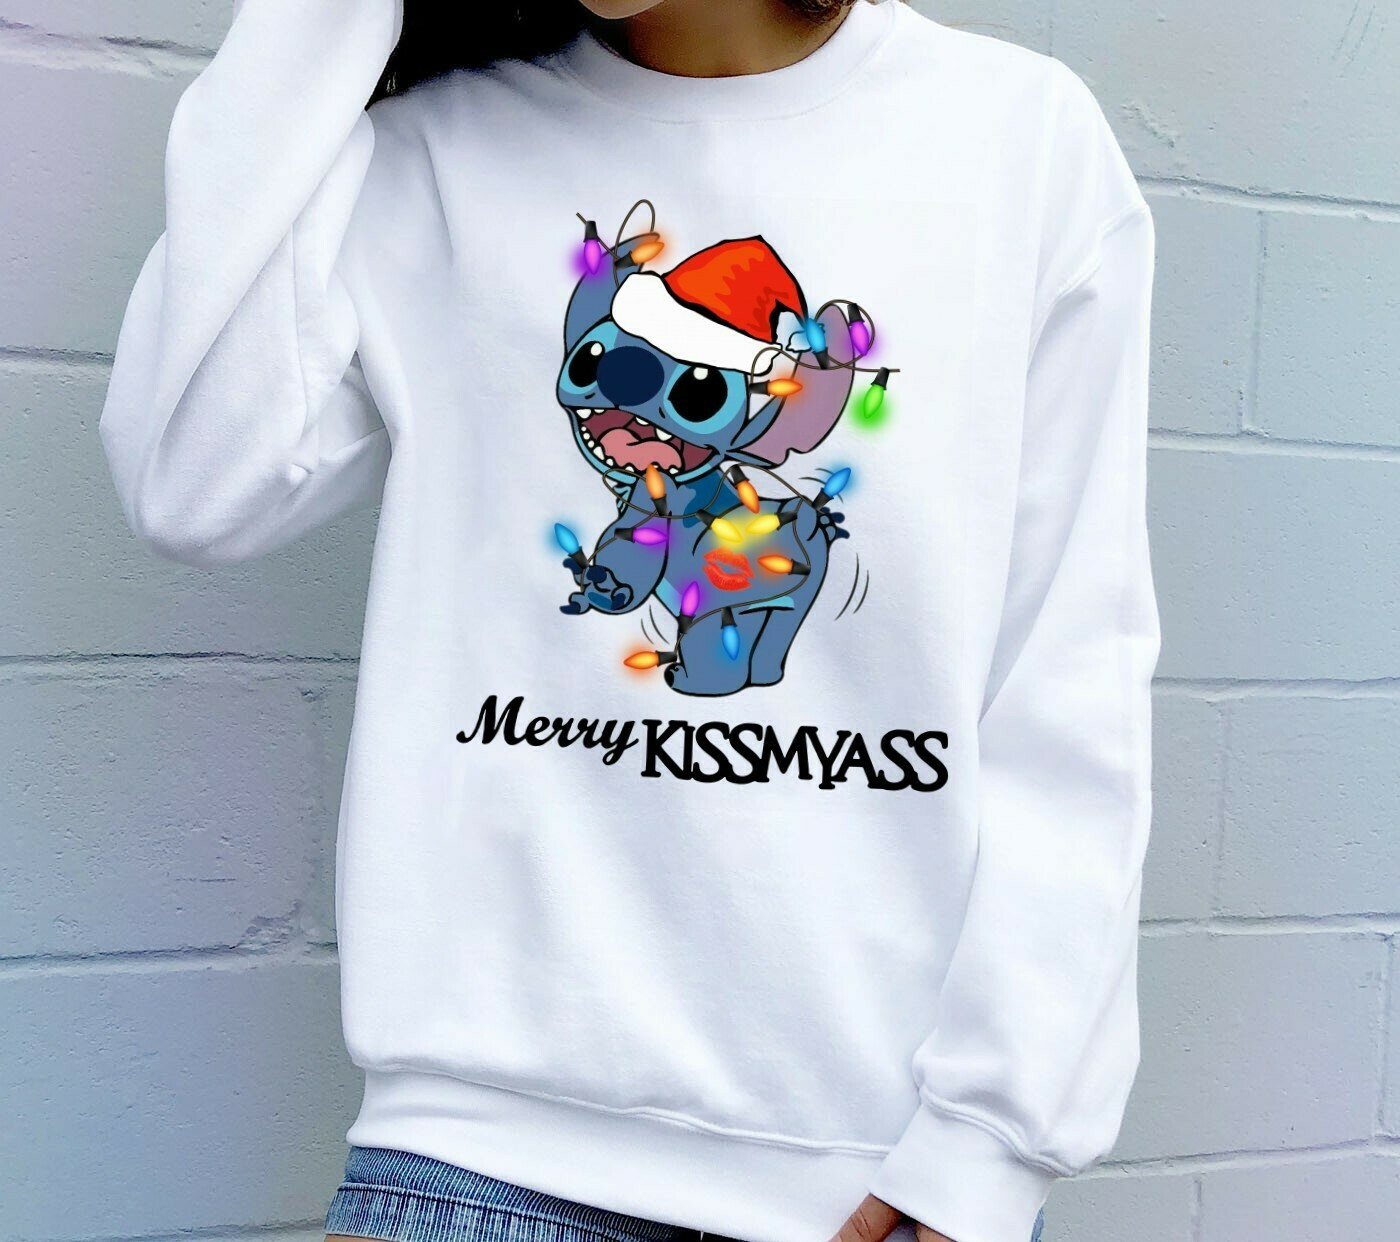 The Stitch Is This Jolly Enough Merry Kissmyass Gift For Lovers Merry Christmas Noel Family Vacation Friends Team Party T-Shirt Long Sleeve Sweatshirt Hoodie Jolly Family Gifts